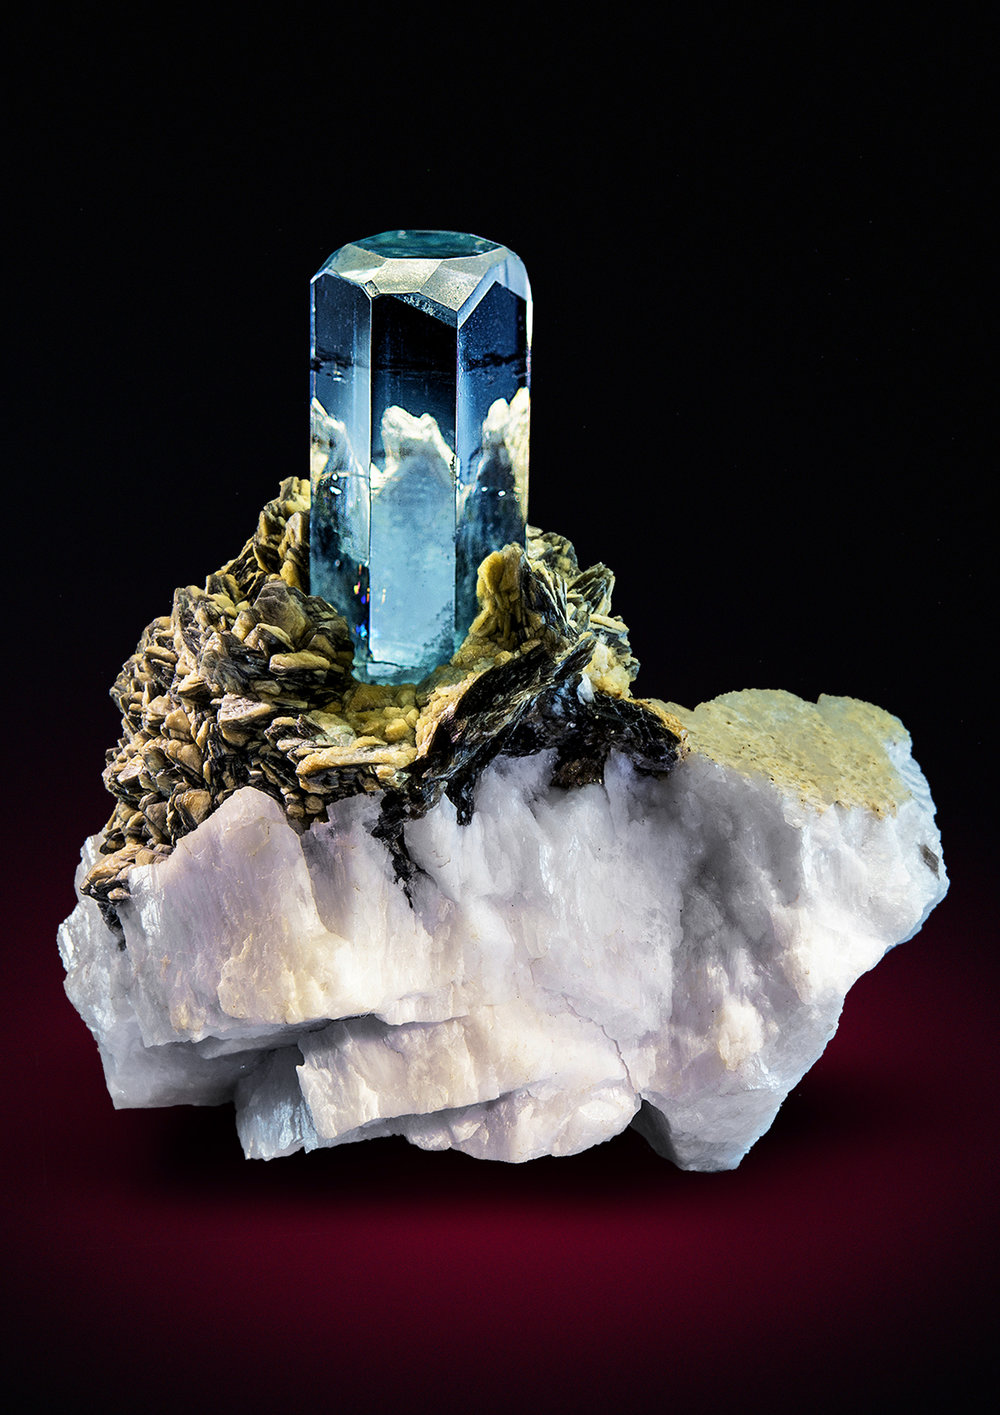 bijoux-et-mineraux: Aquamarine on Feldspar with Muscovite Watch Video Isn't this just amazing?